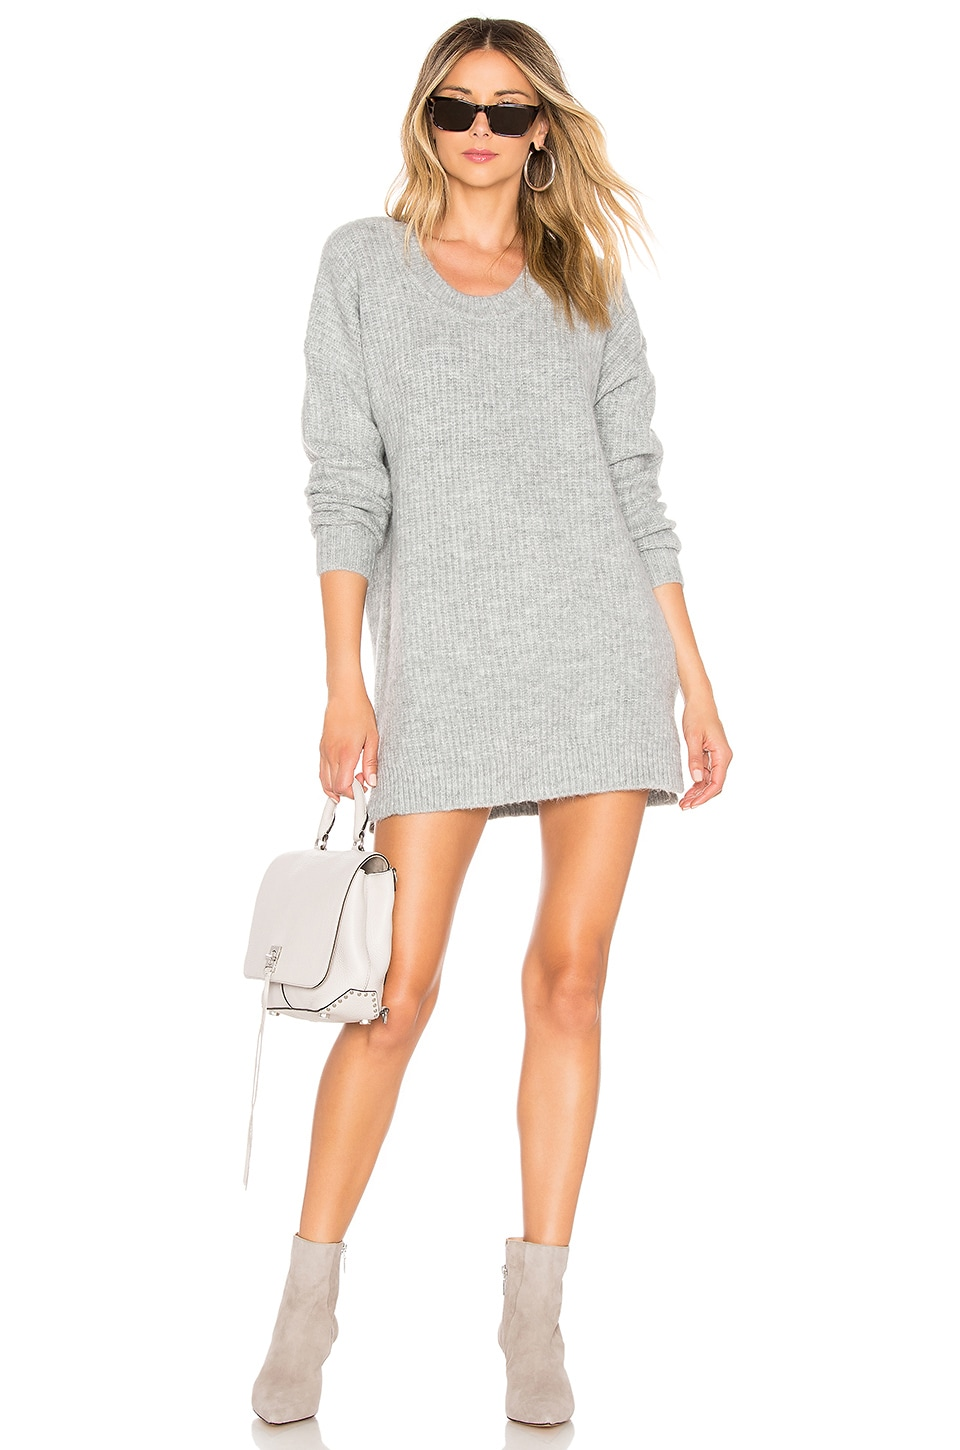 Chrissy Teigen x REVOLVE Logan Sweater in Grey Melange